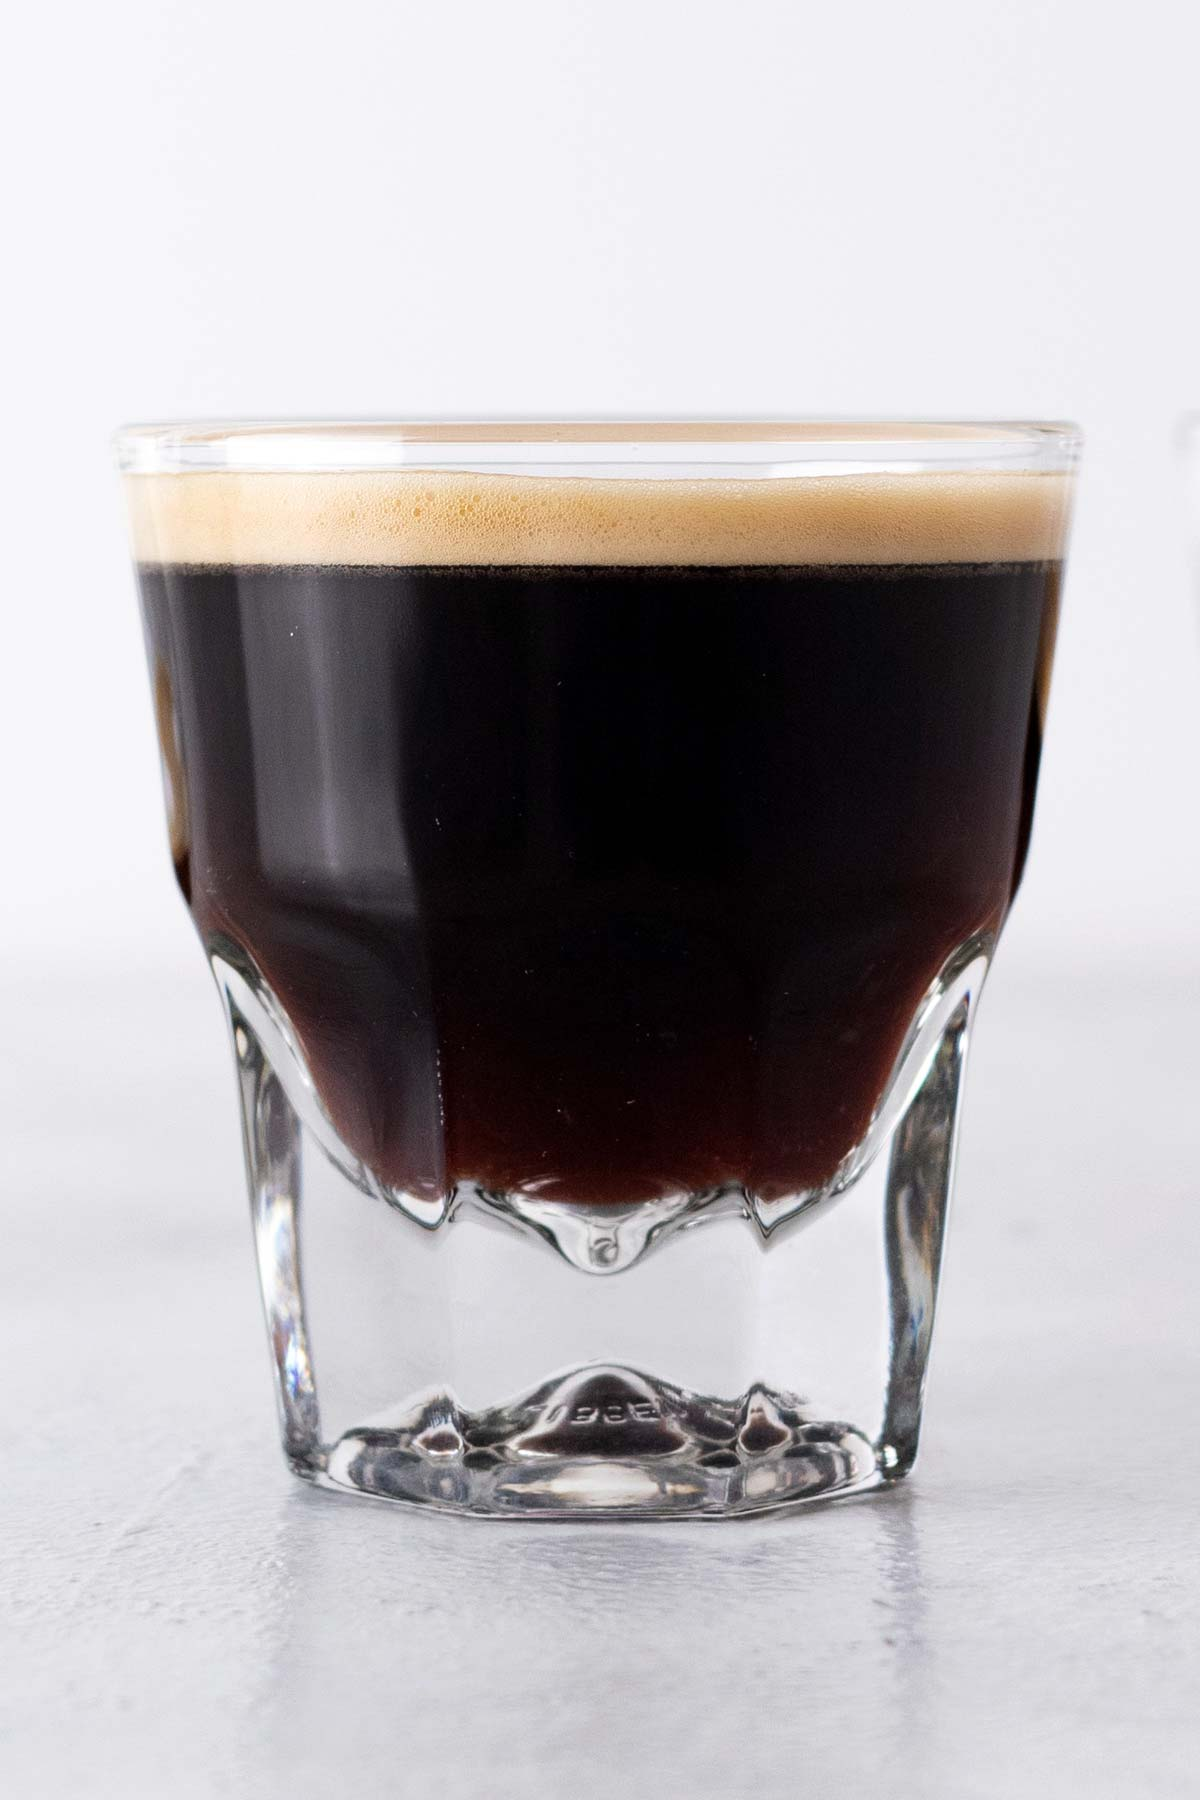 A lungo shot in a glass cup.